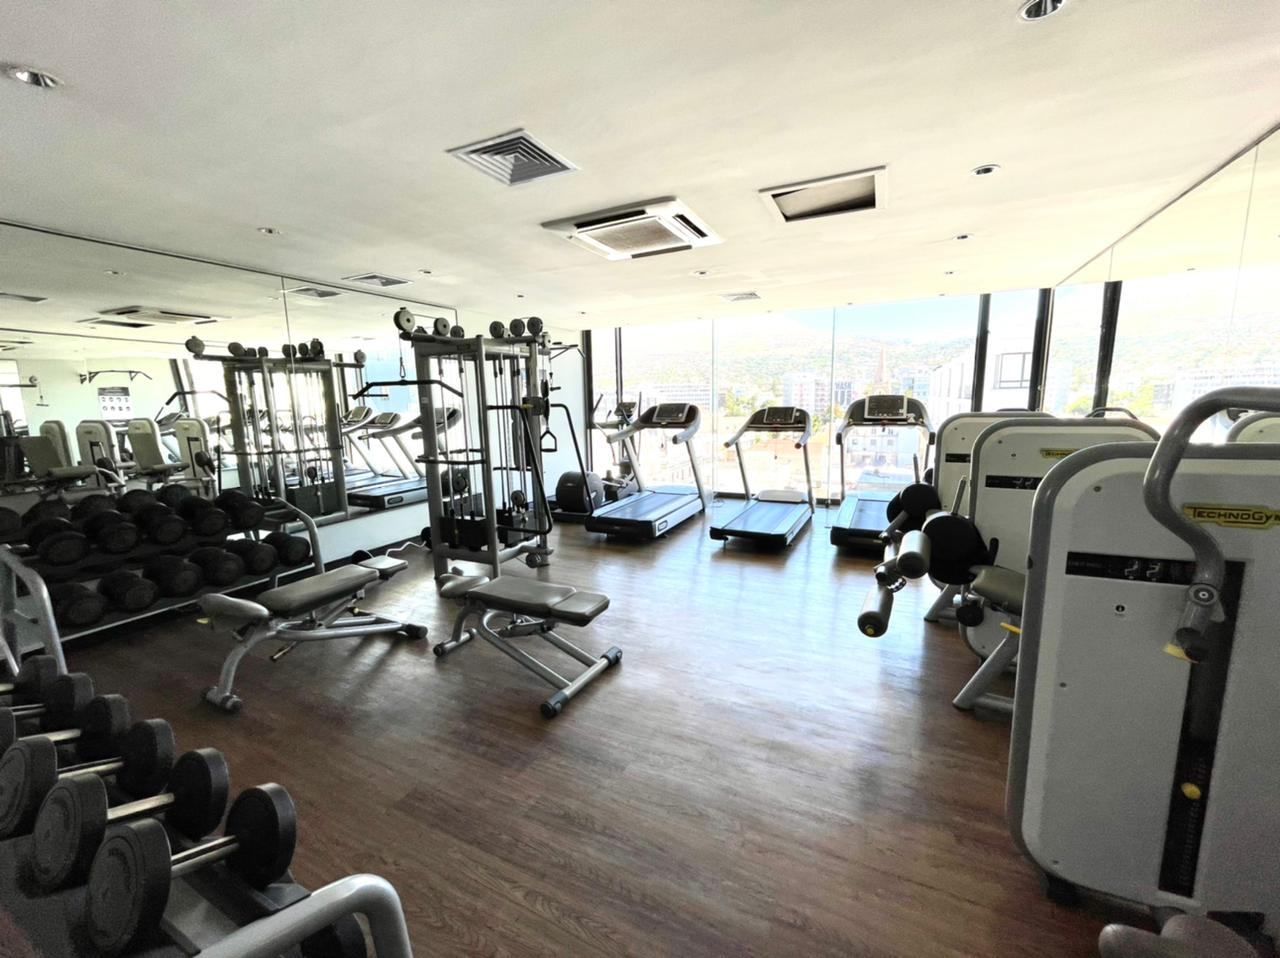 Apartment in City Centre - Gym.jpeg